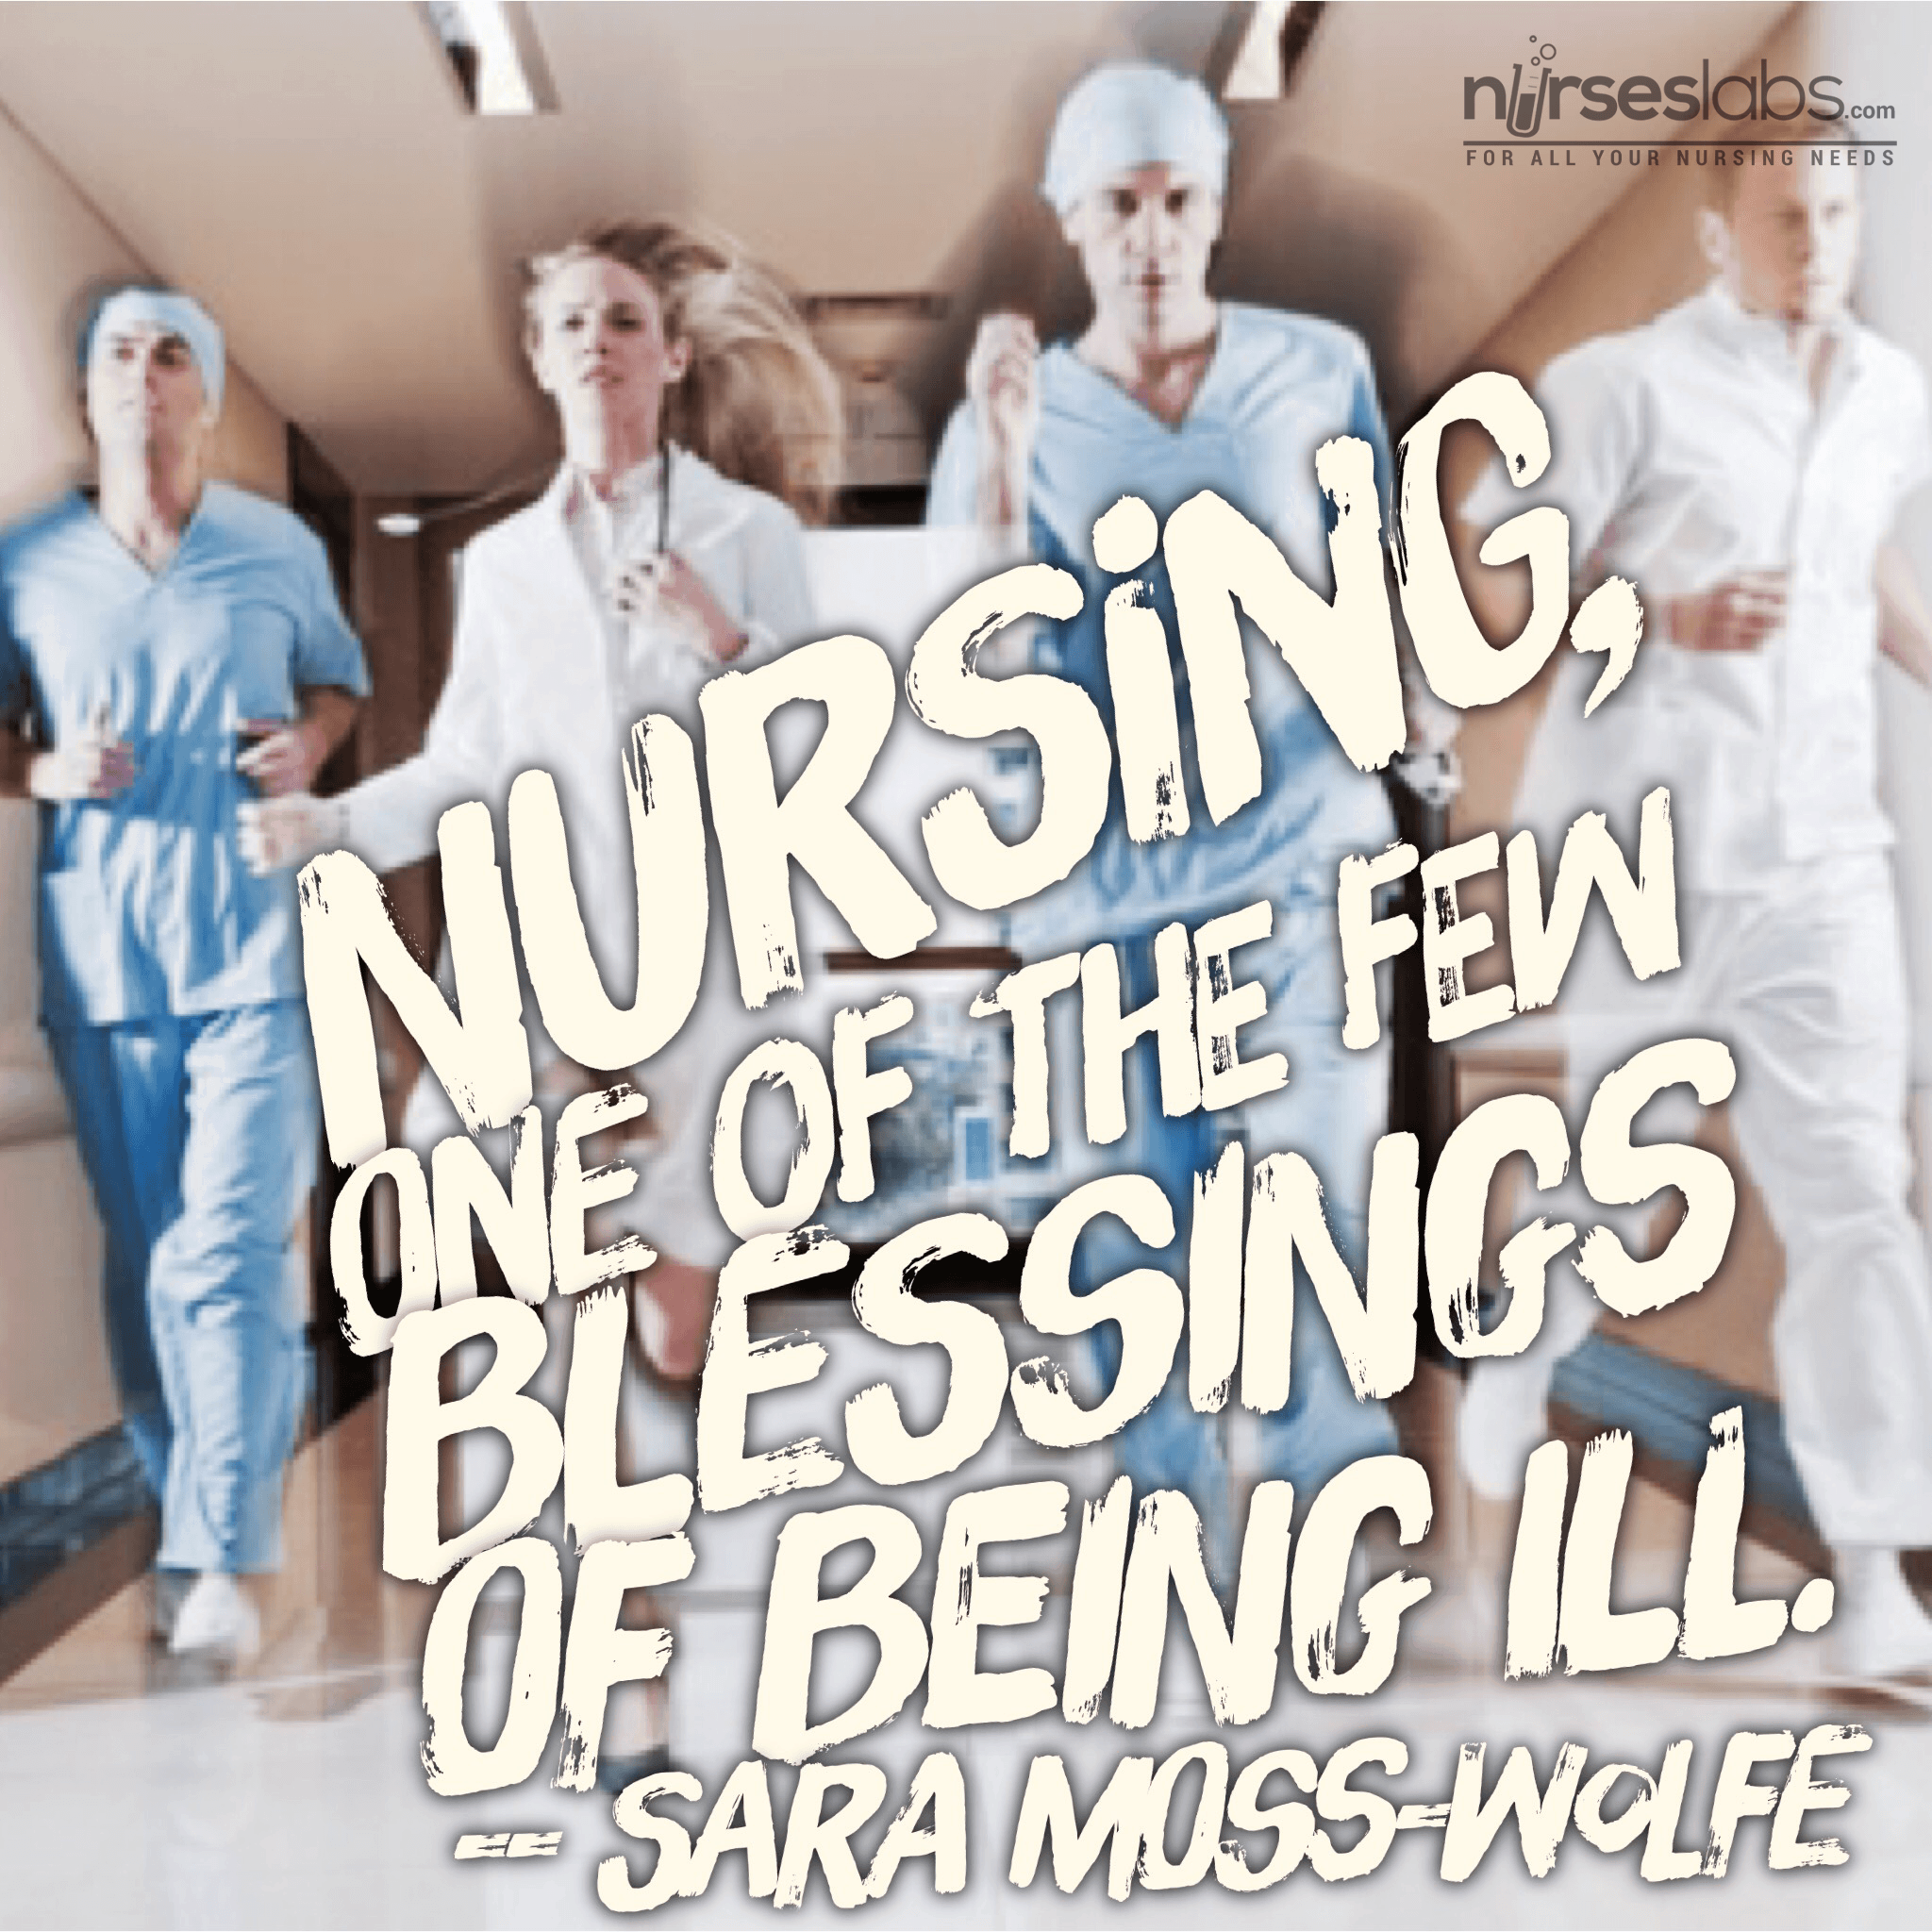 Nurses — one of the few blessings of being ill.